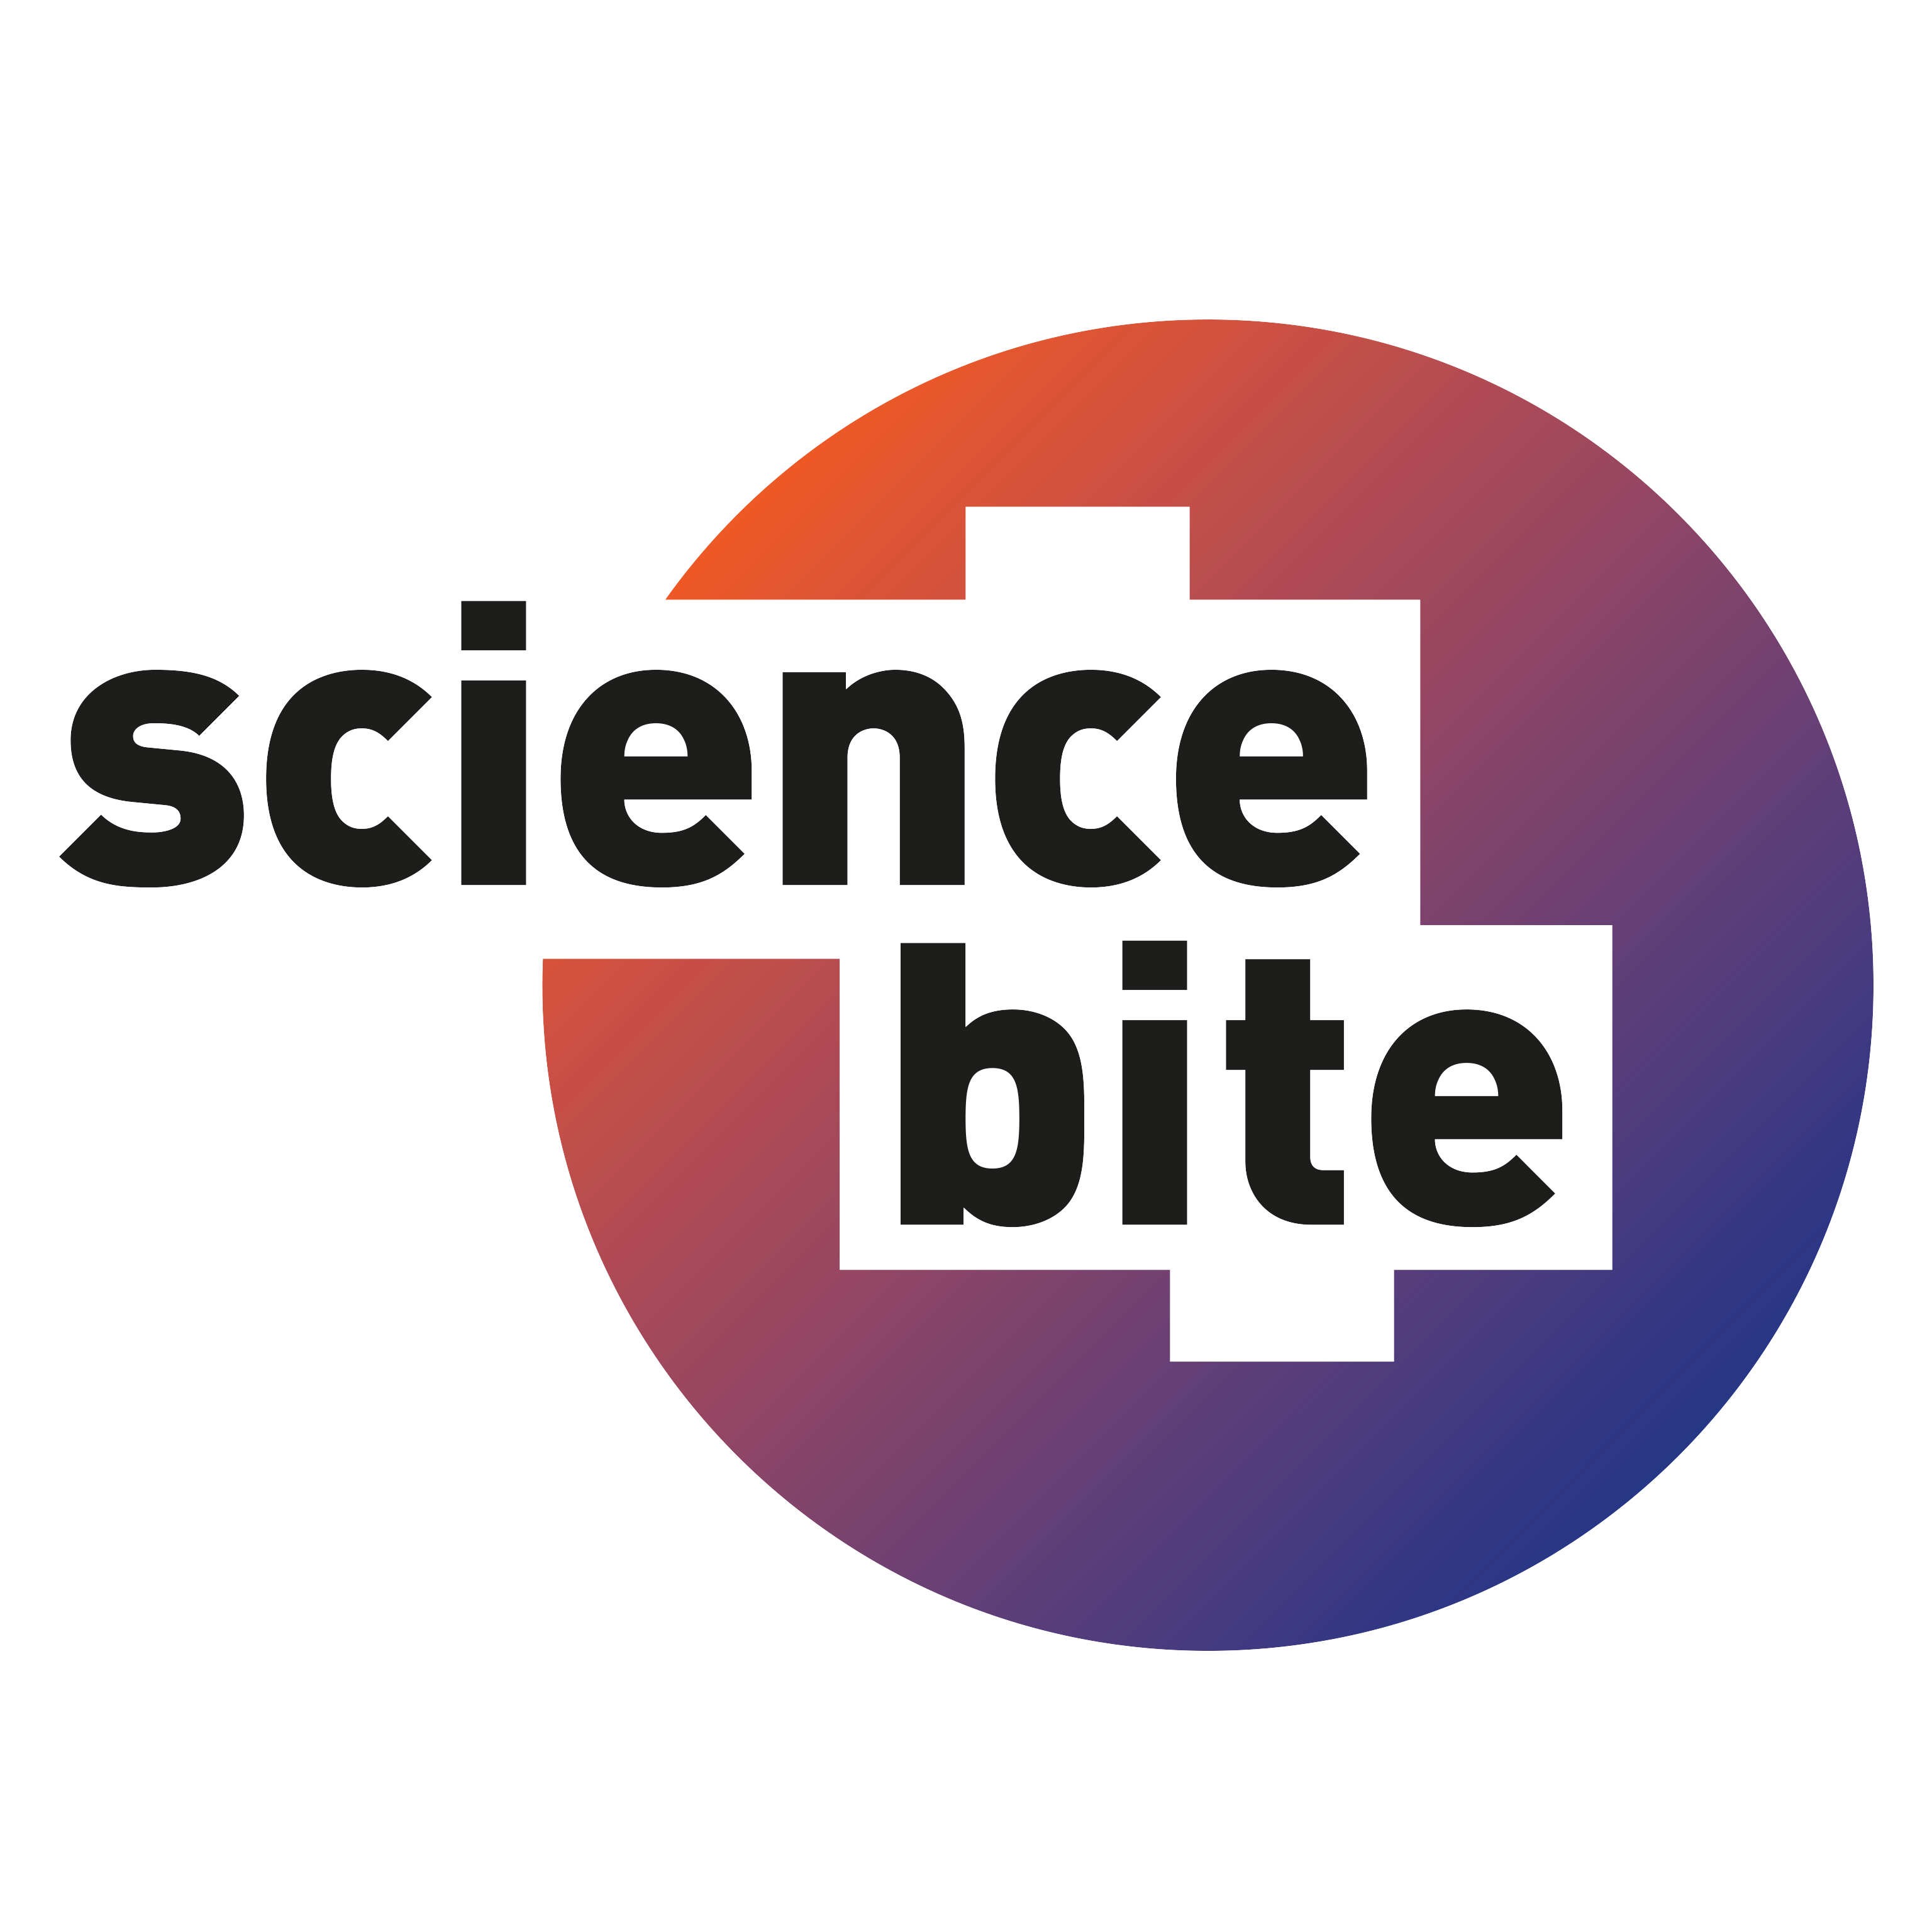 sciencebite.com